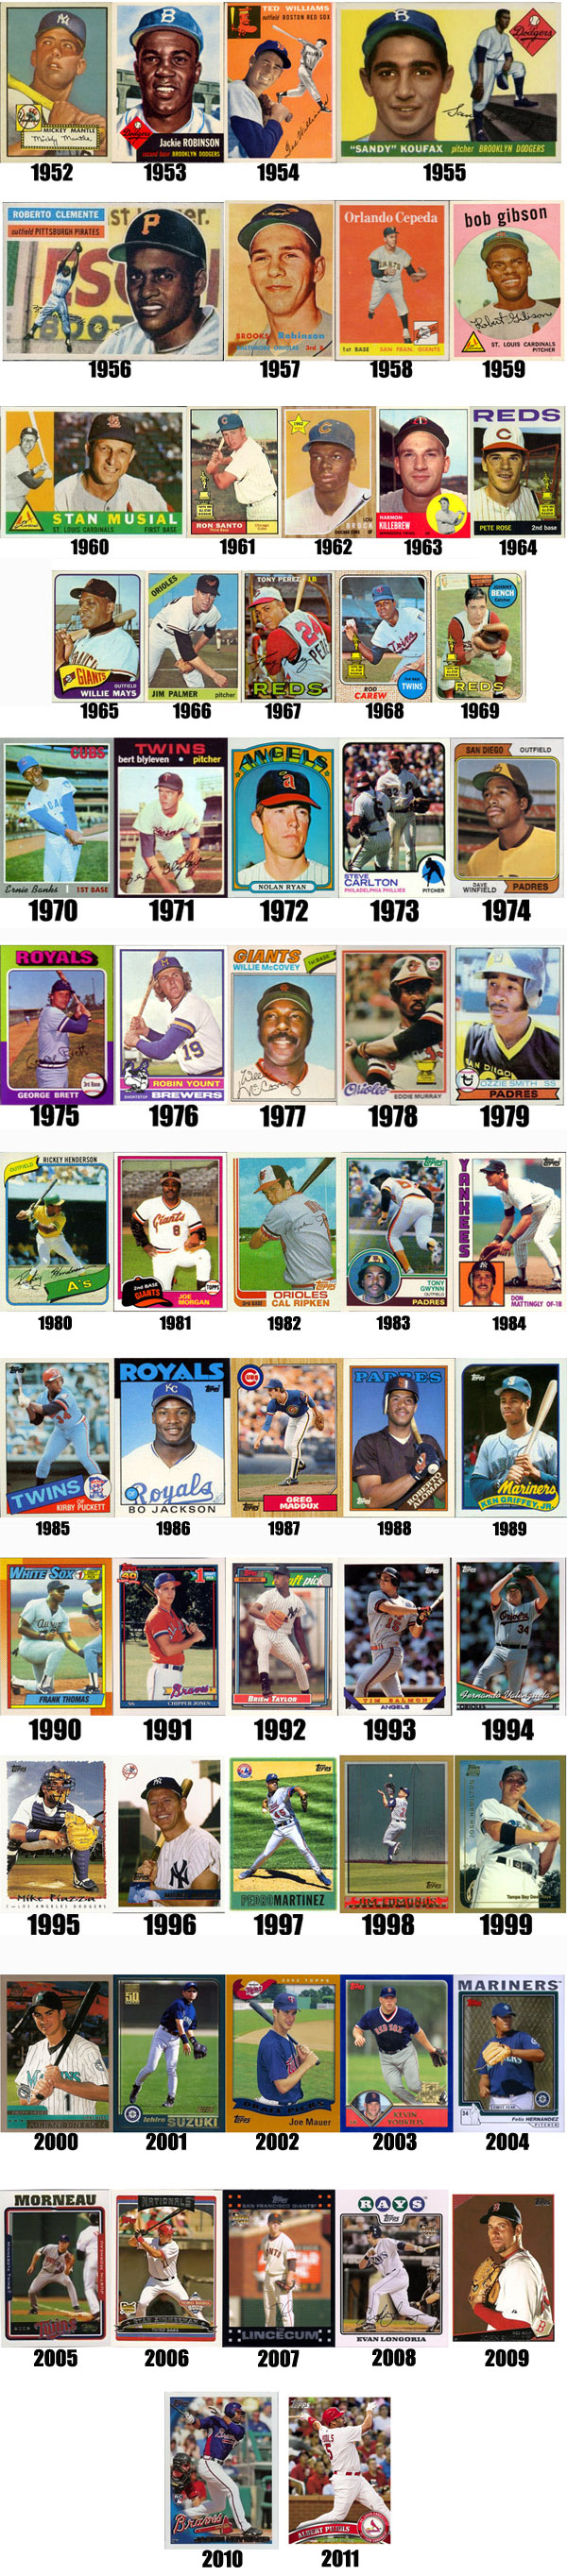 60YearsofTopps Timeline Image